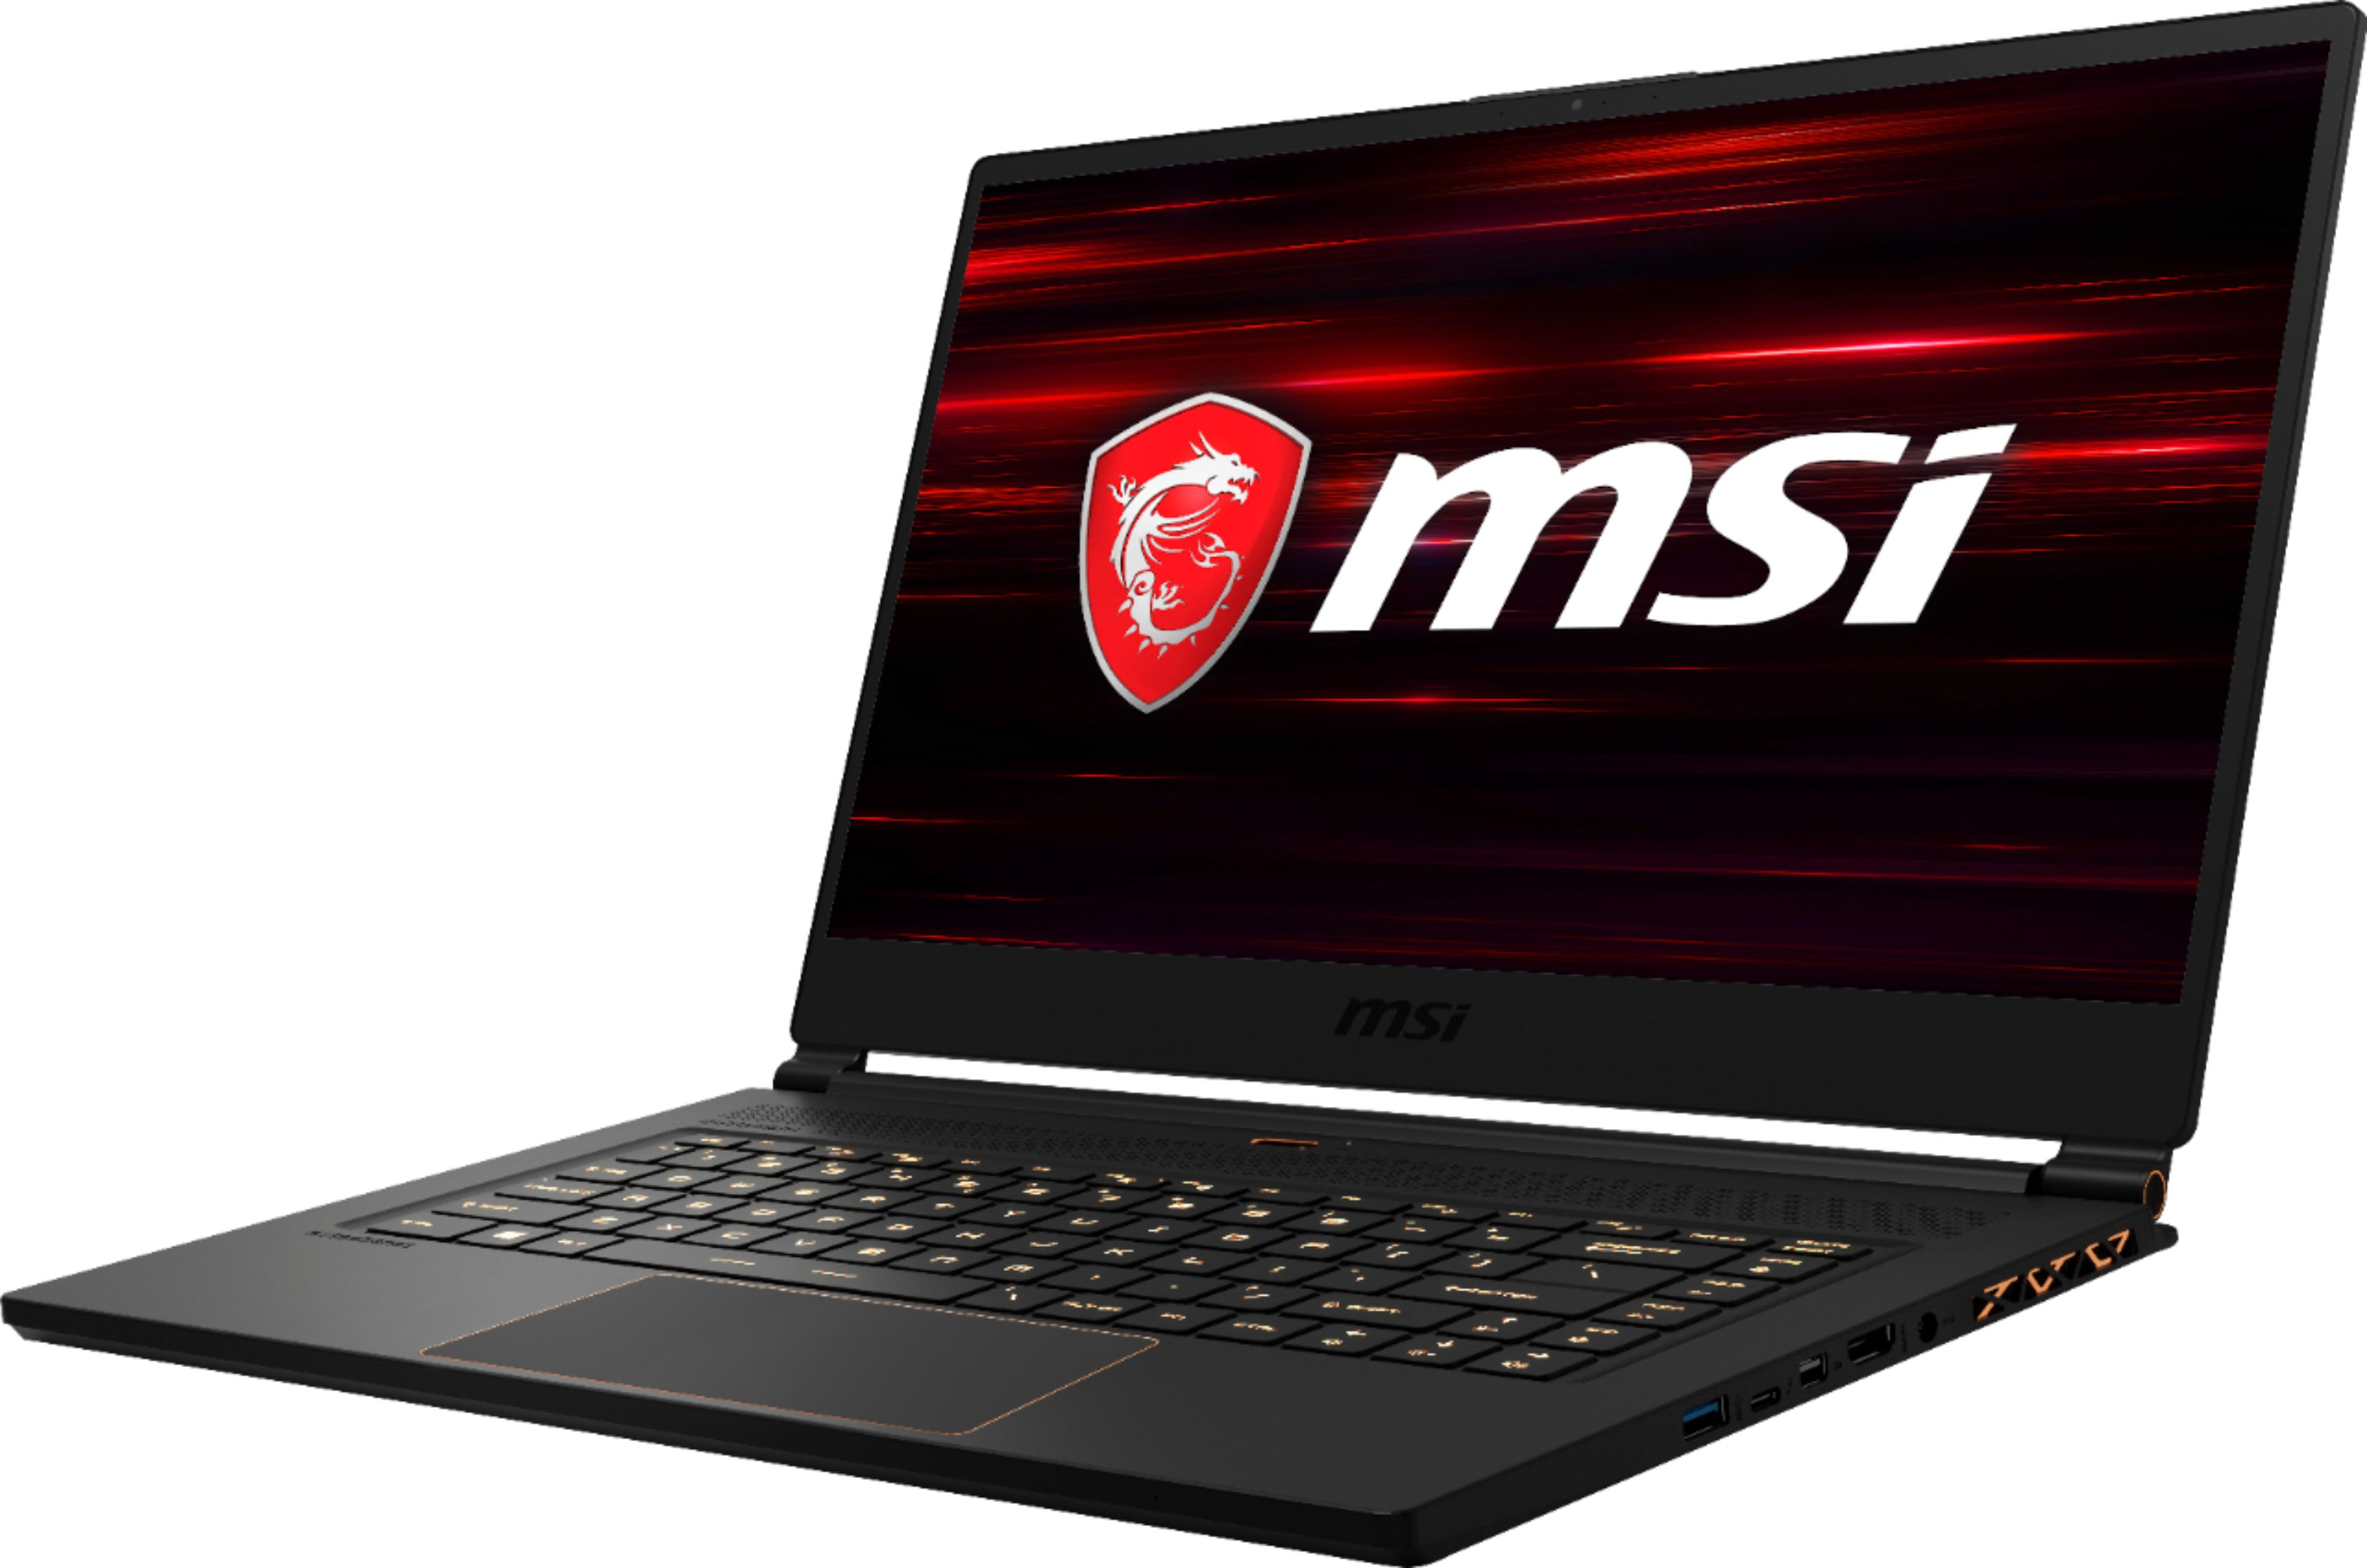 """Left Zoom. MSI - Geek Squad Certified Refurbished 15.6"""" Gaming Laptop - Intel Core i7 - 16GB Memory - NVIDIA GeForce RTX 2060 - 512GB SSD - Matte Black With Gold Diamond Cut."""